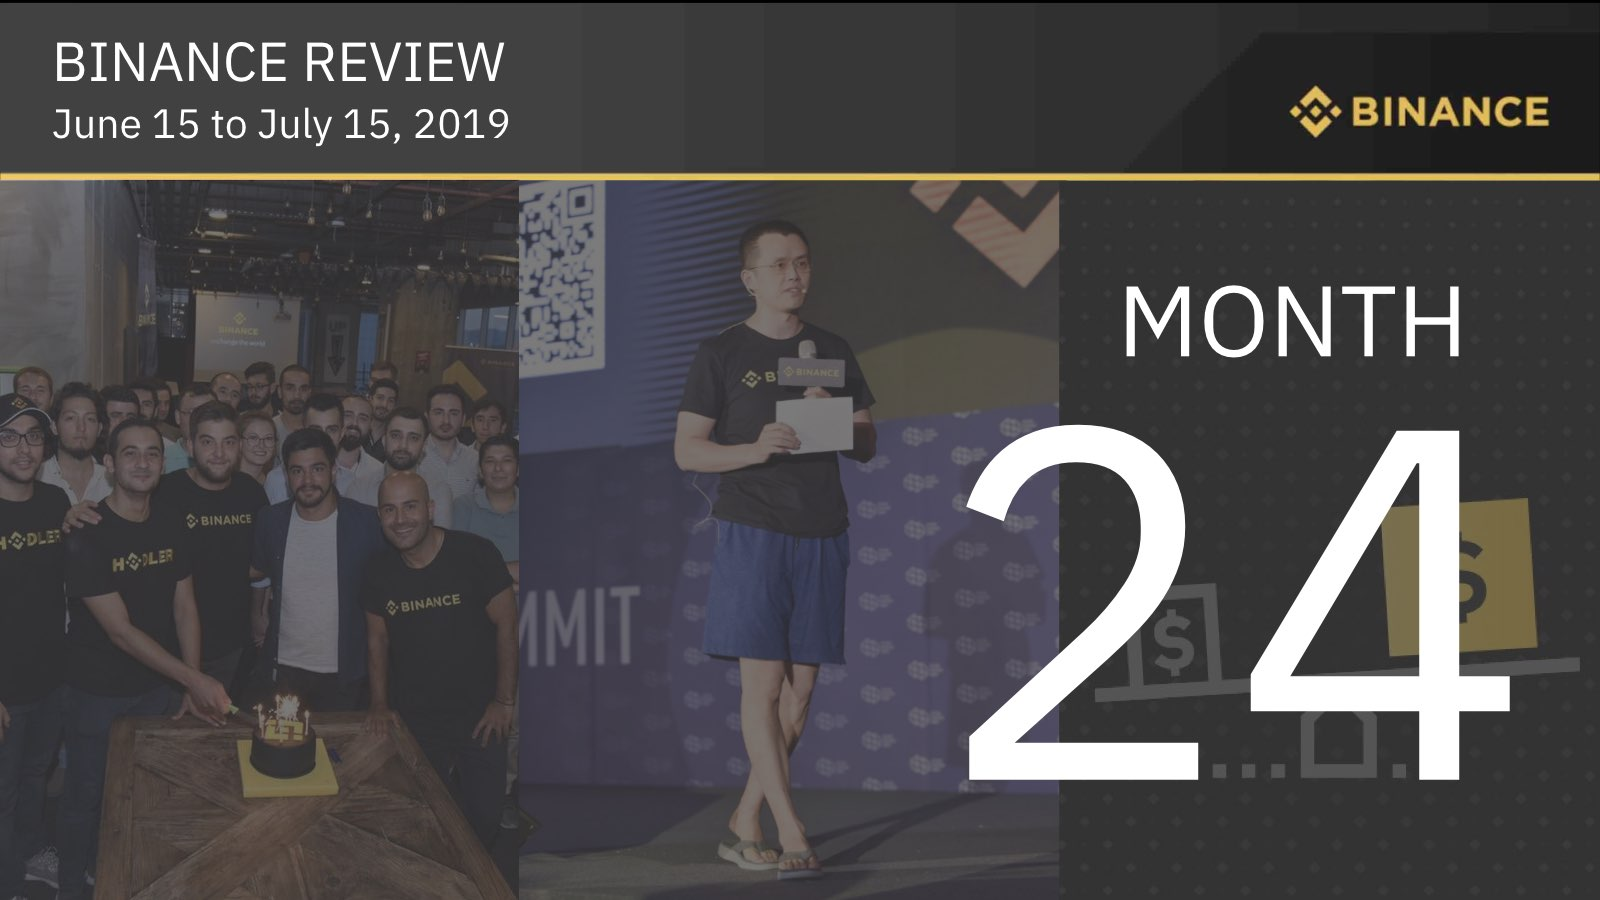 Binance Review, Month 24: Ending Year 2 with a Bang